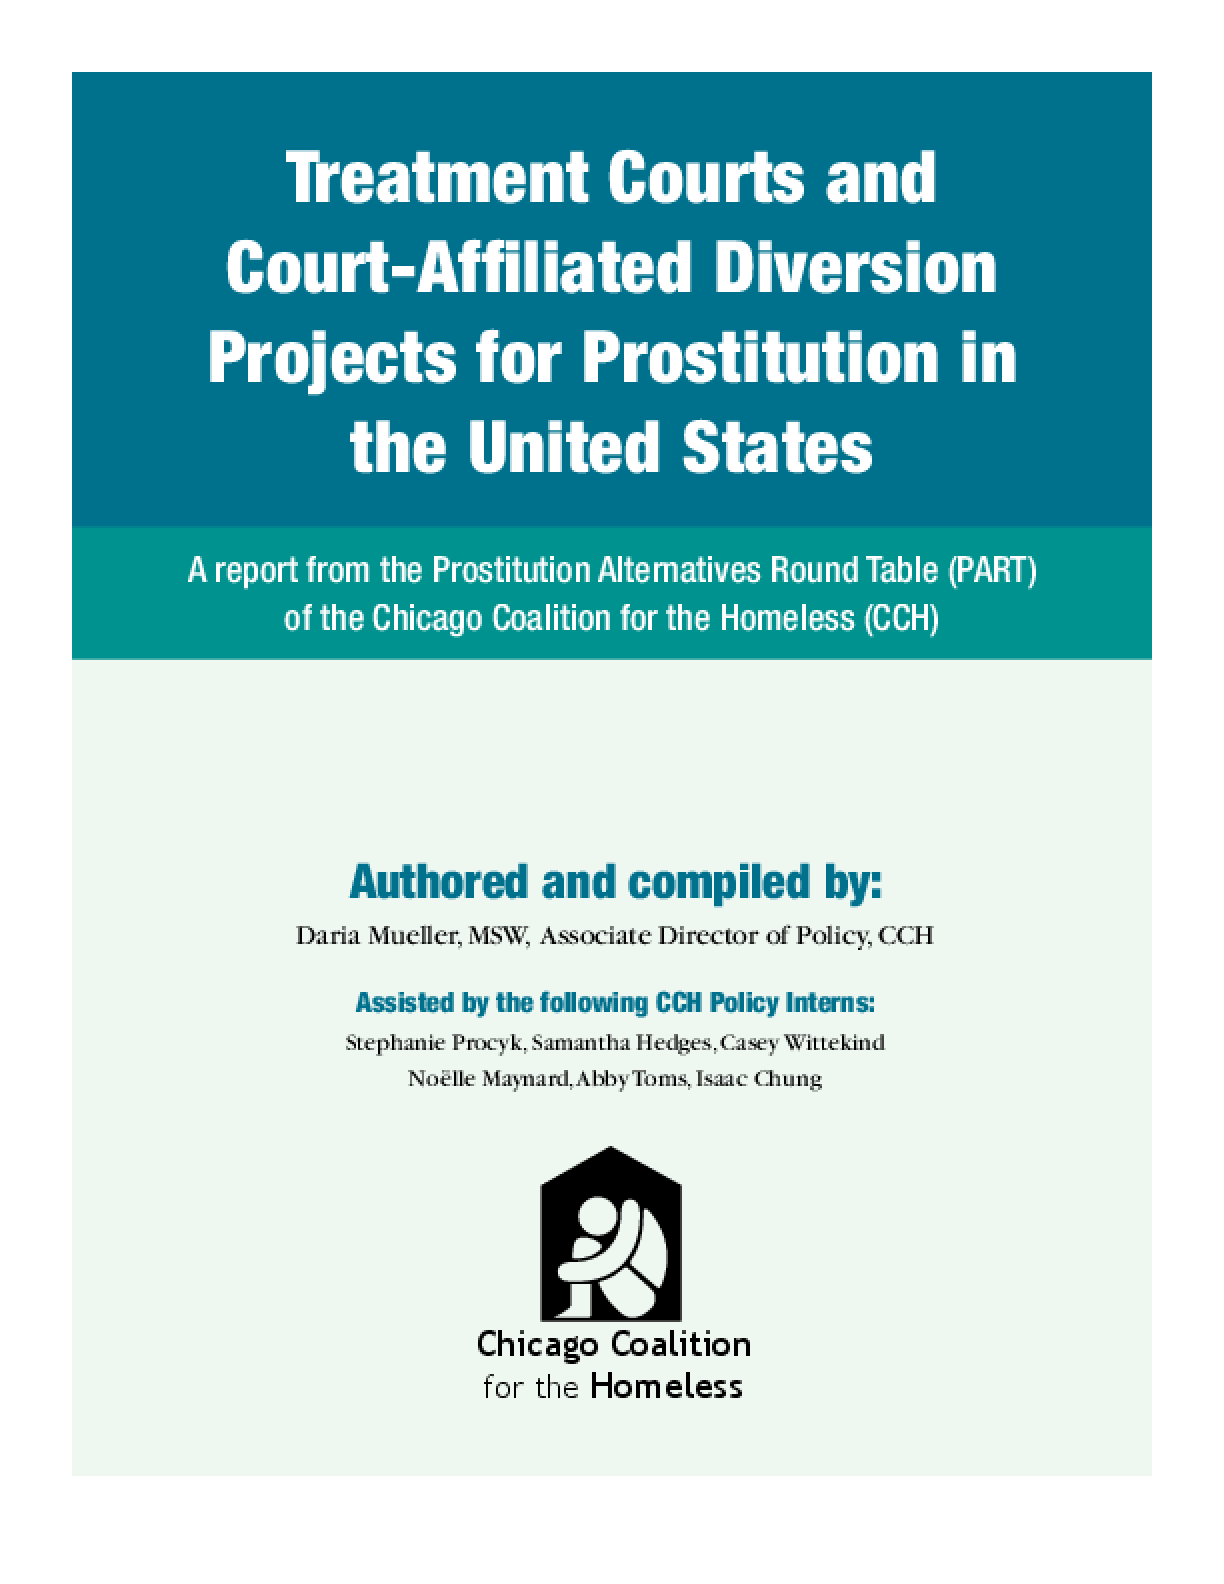 Treatment Courts and Court-Affiliated Diversion Projects for Prostitution in the United States